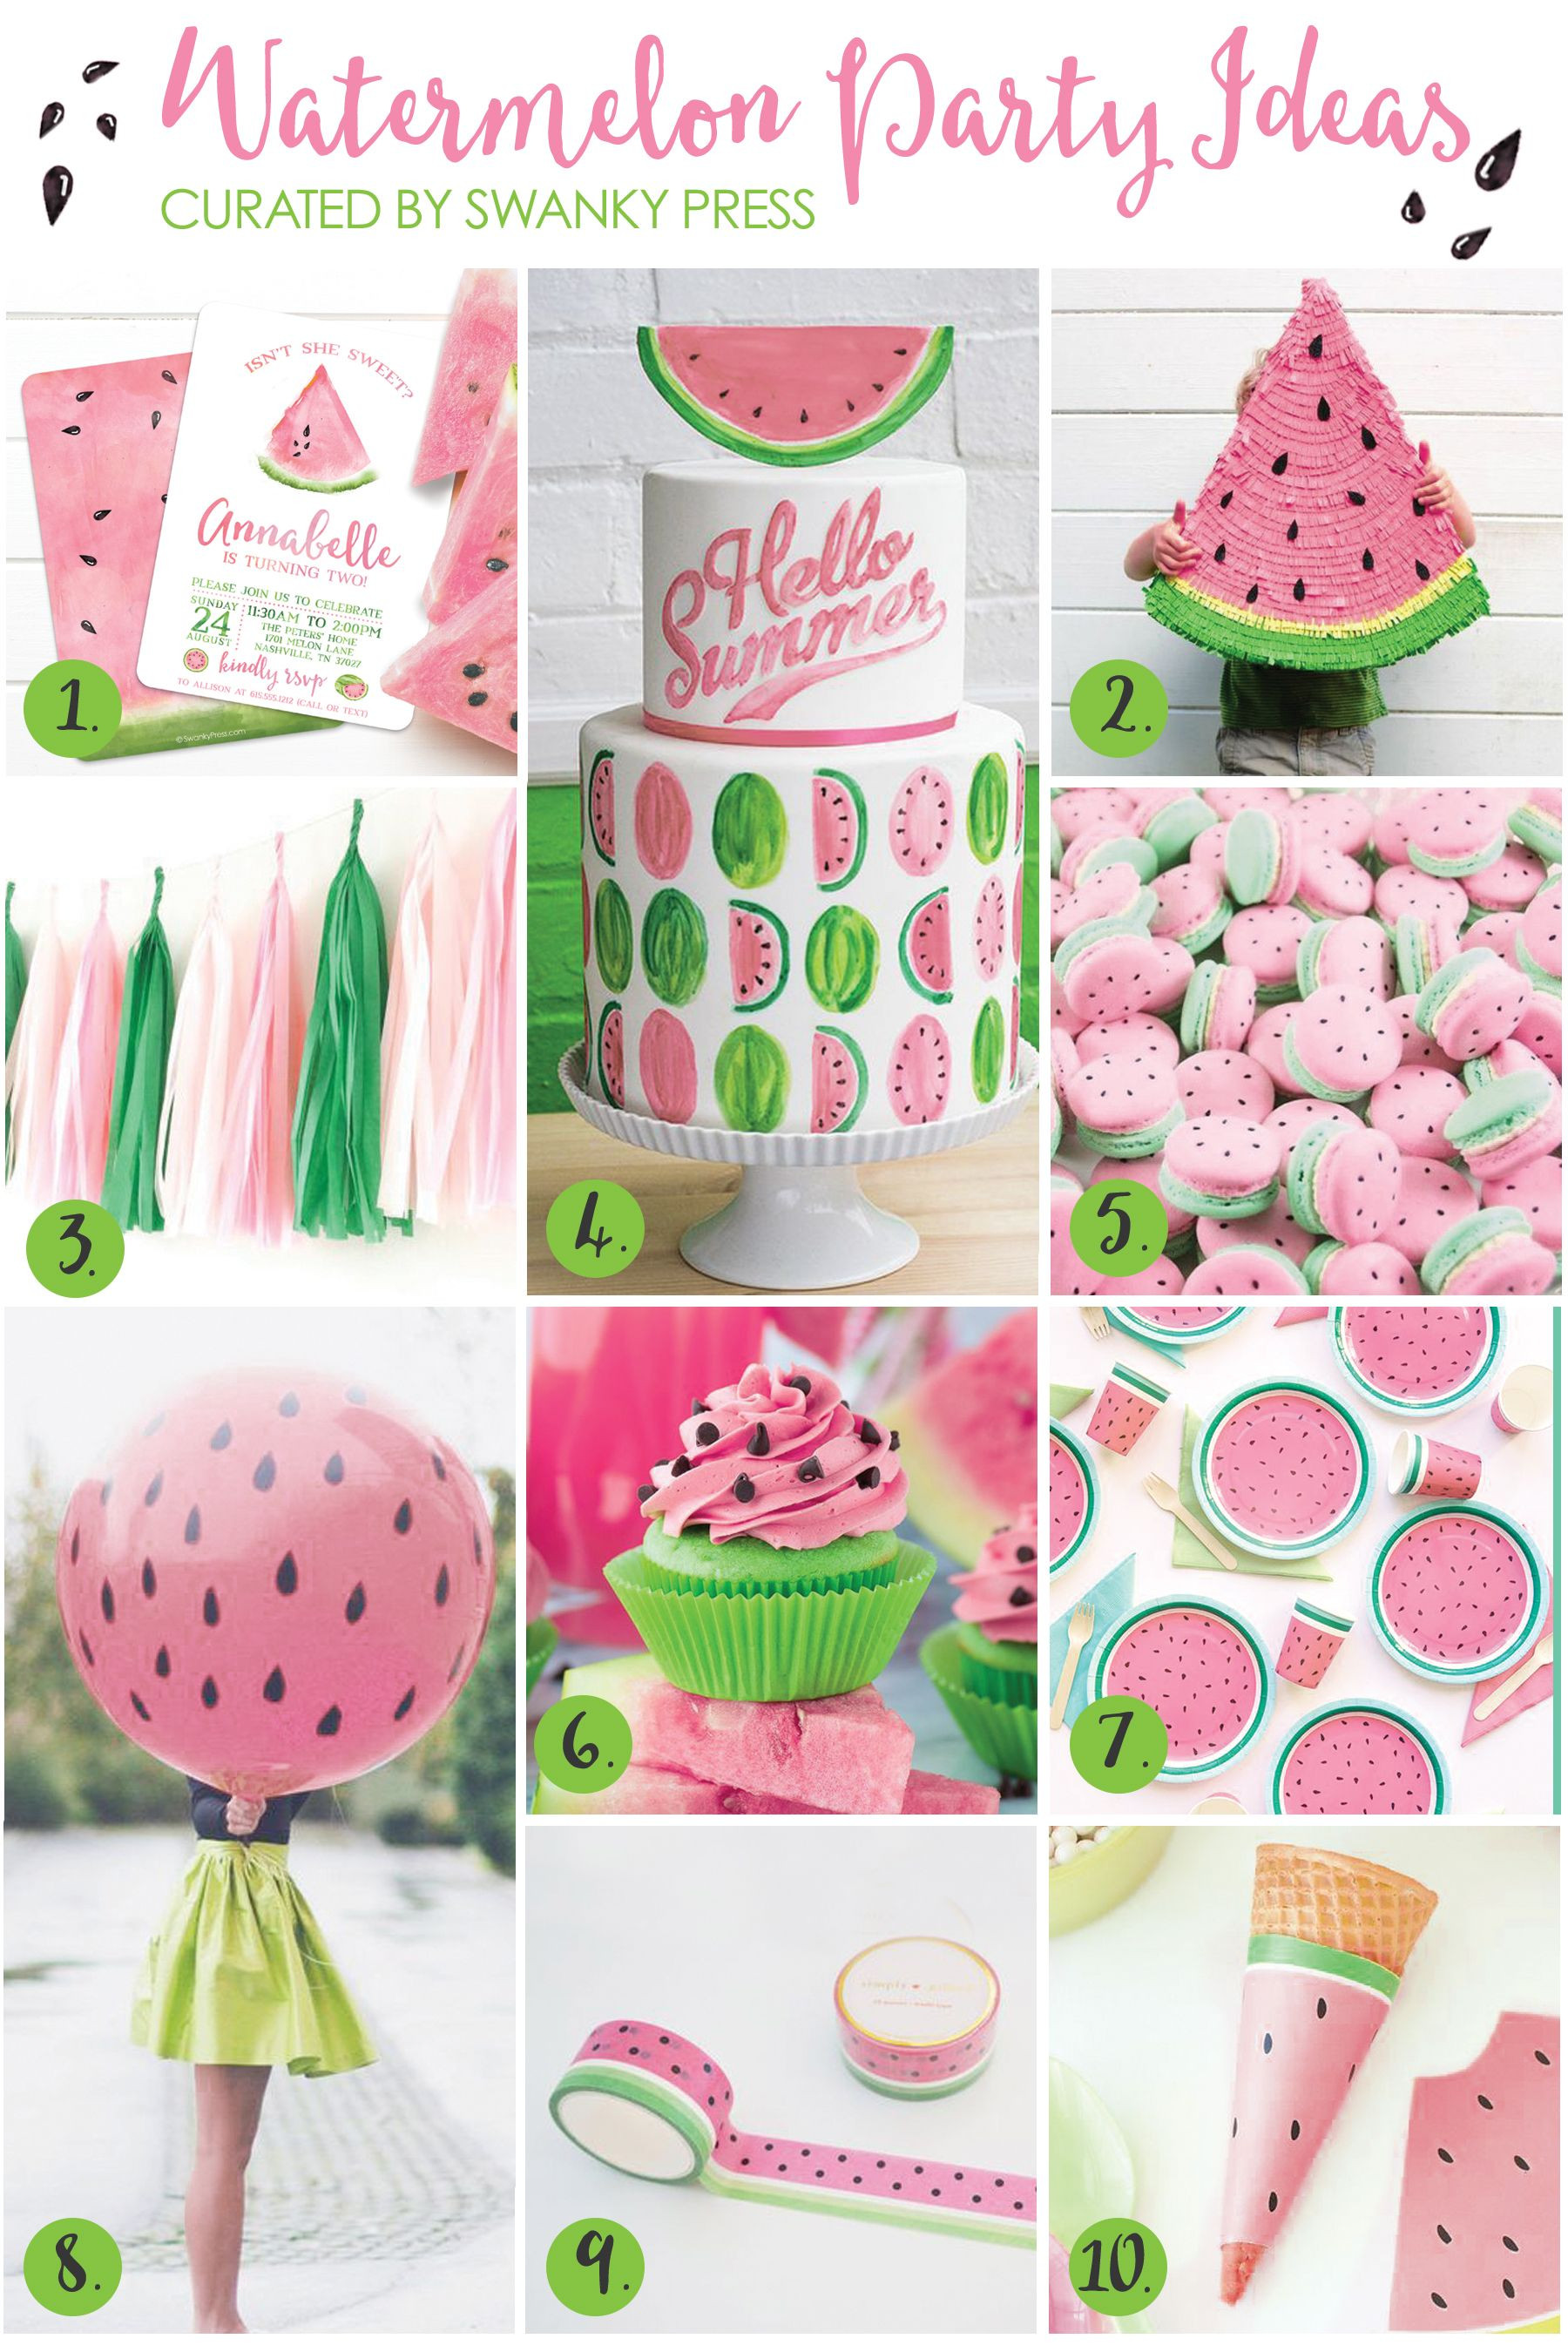 Best ideas about Idea For Kids Birthday Party . Save or Pin Watermelon Party Ideas Watermelon Party Now.